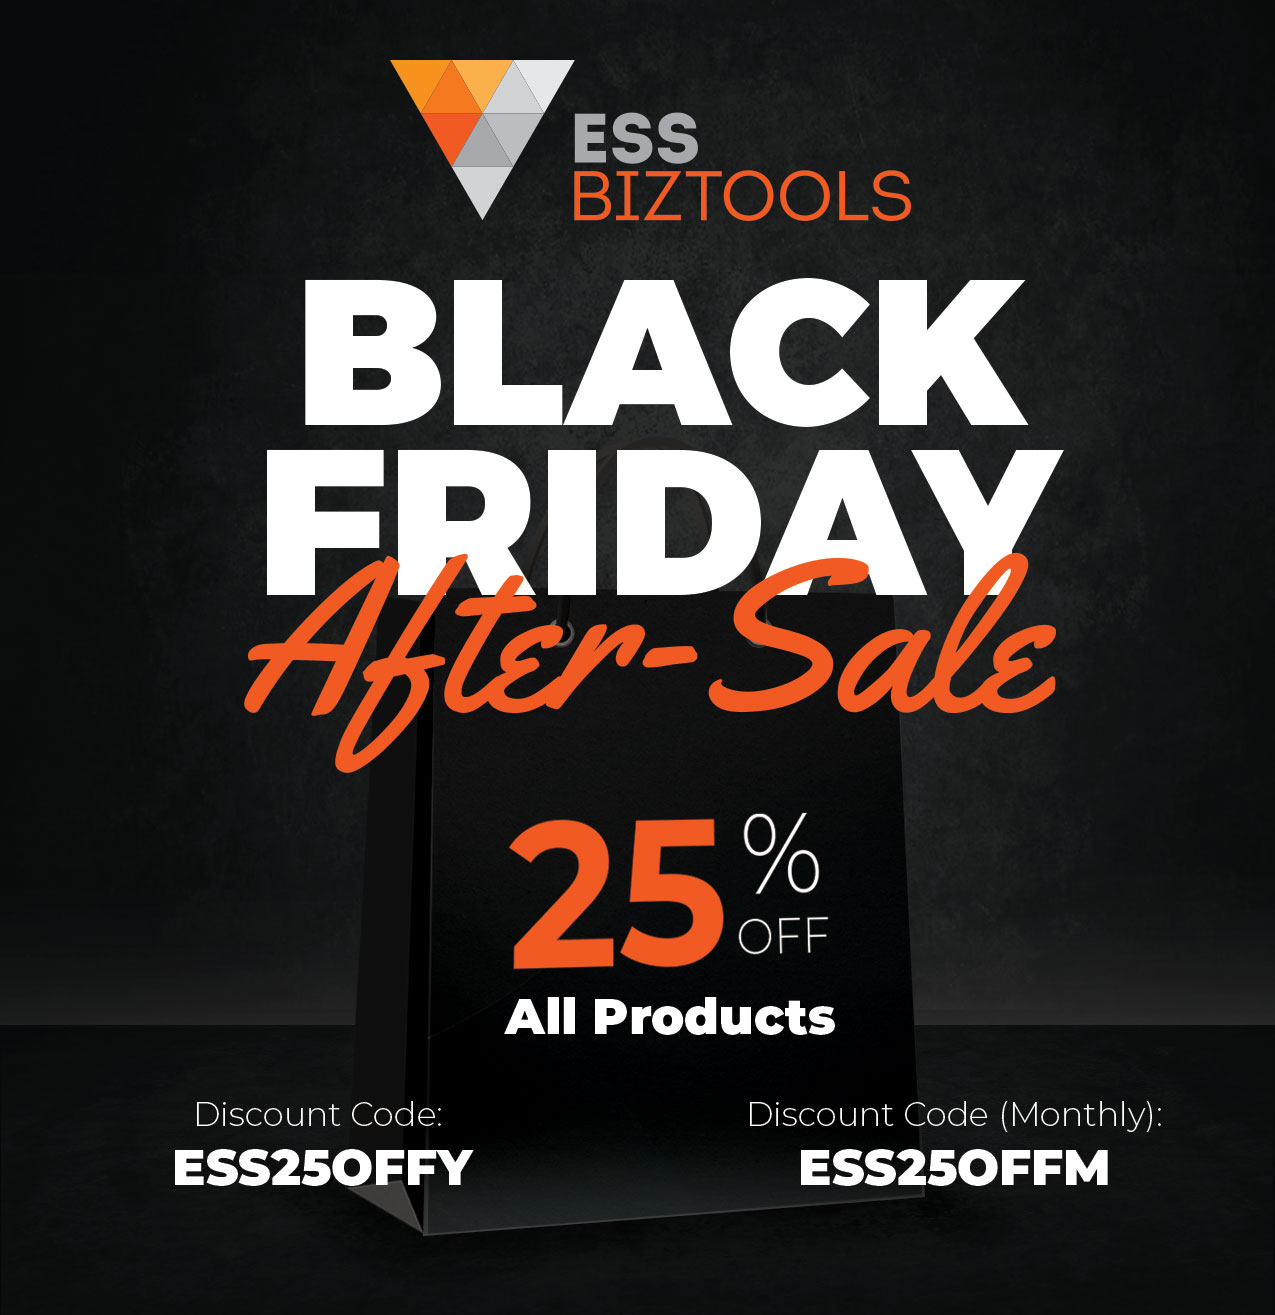 ess black friday aftersale